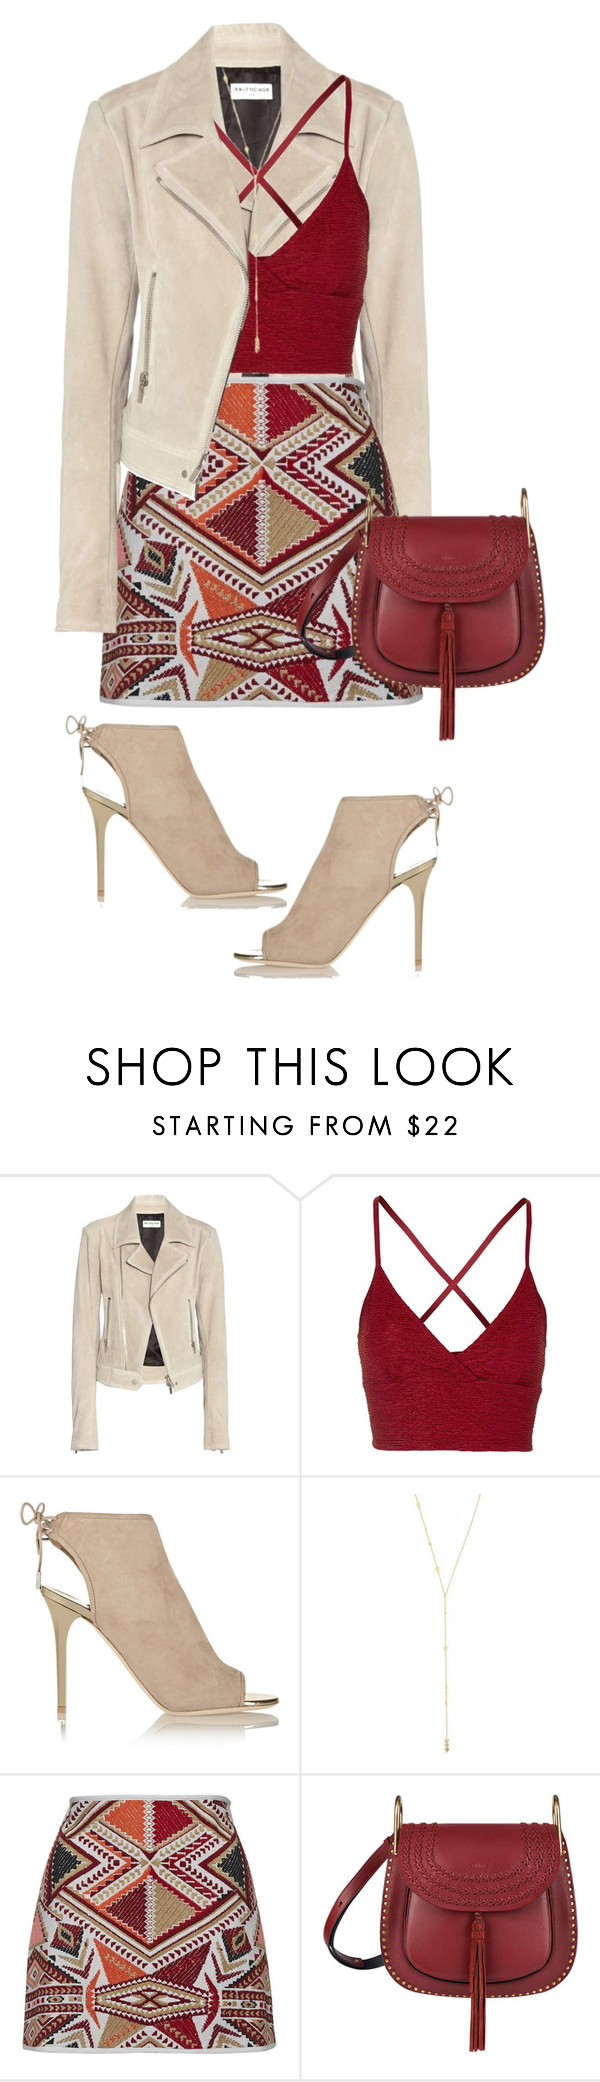 """""""Layers"""" by lisamichele-cdxci ❤ liked on Polyvore featuring Balenciaga, Topshop, Jimmy Choo, Gorjana and Chloé"""